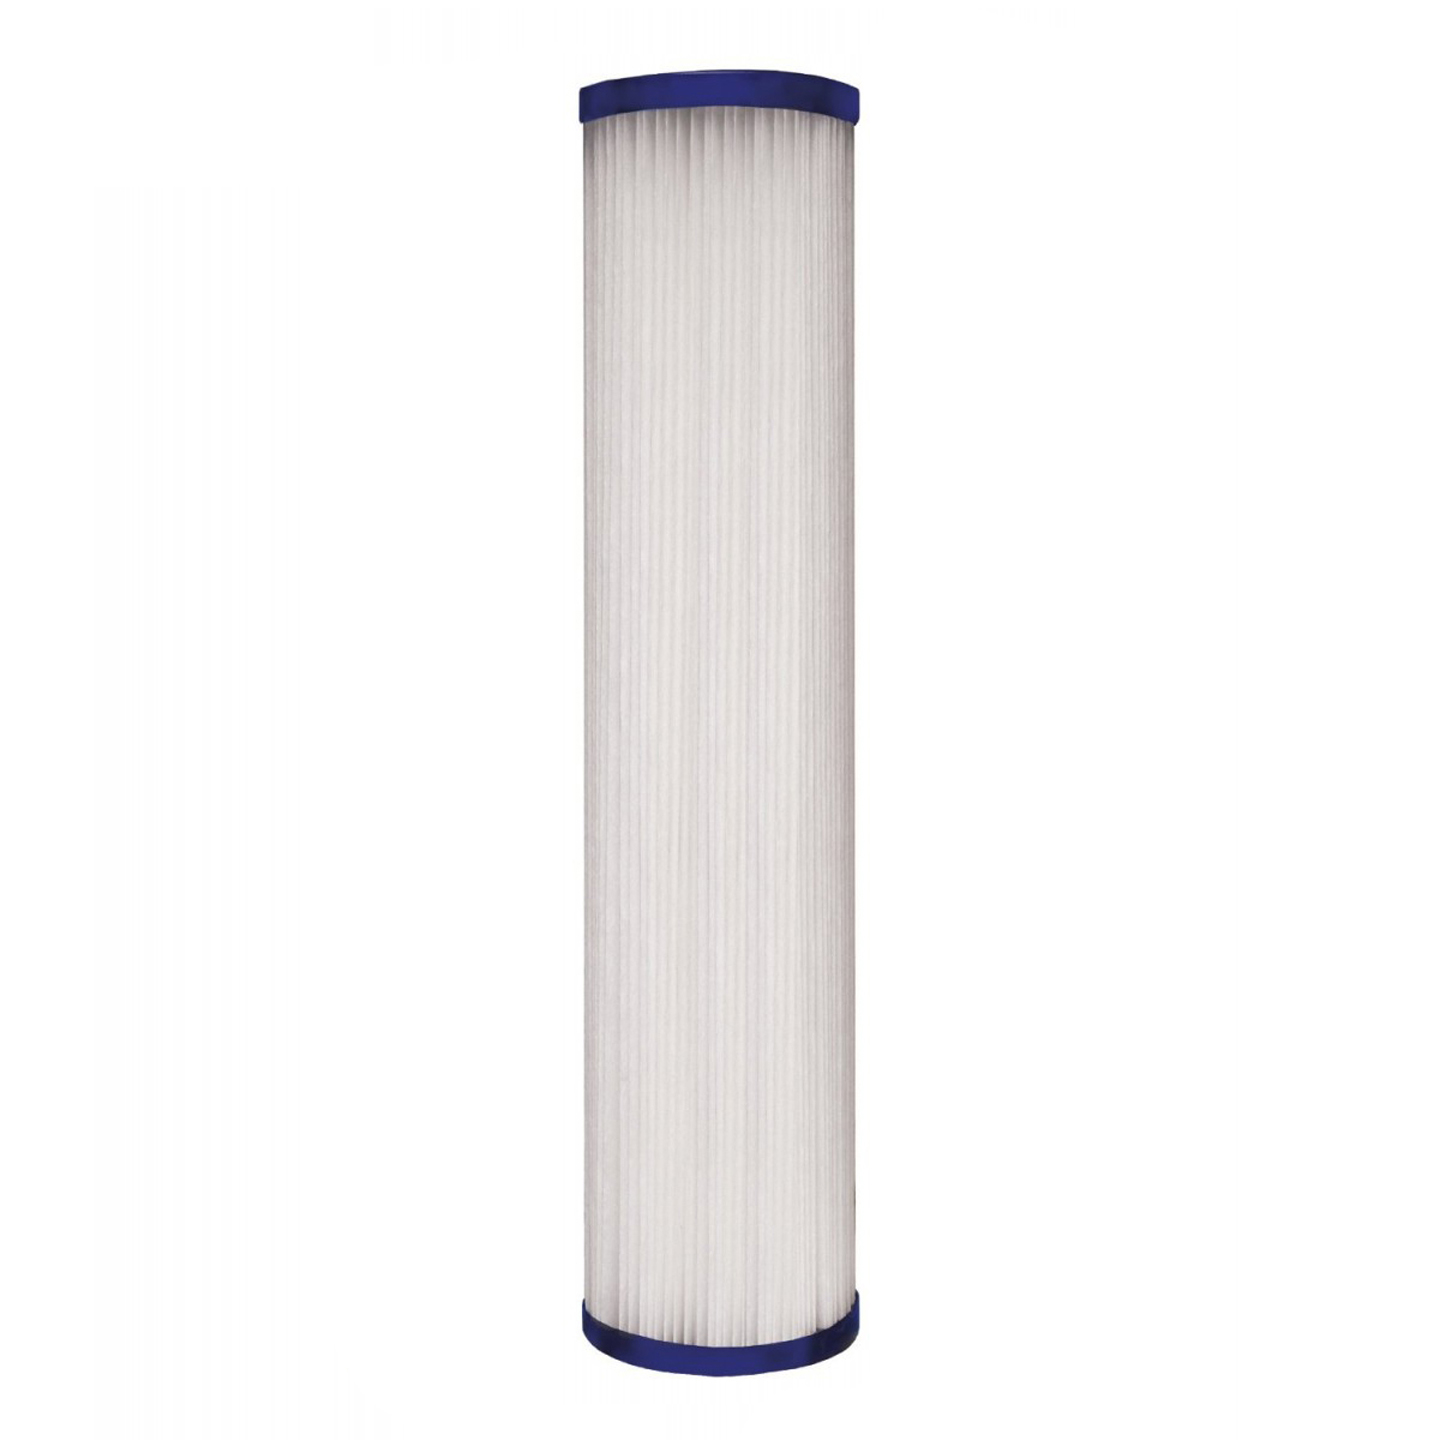 SPC-25-1005 Hydronix Comparable Pleated Sediment Water Filter by Tier1 TIER1-SPC-25-1005